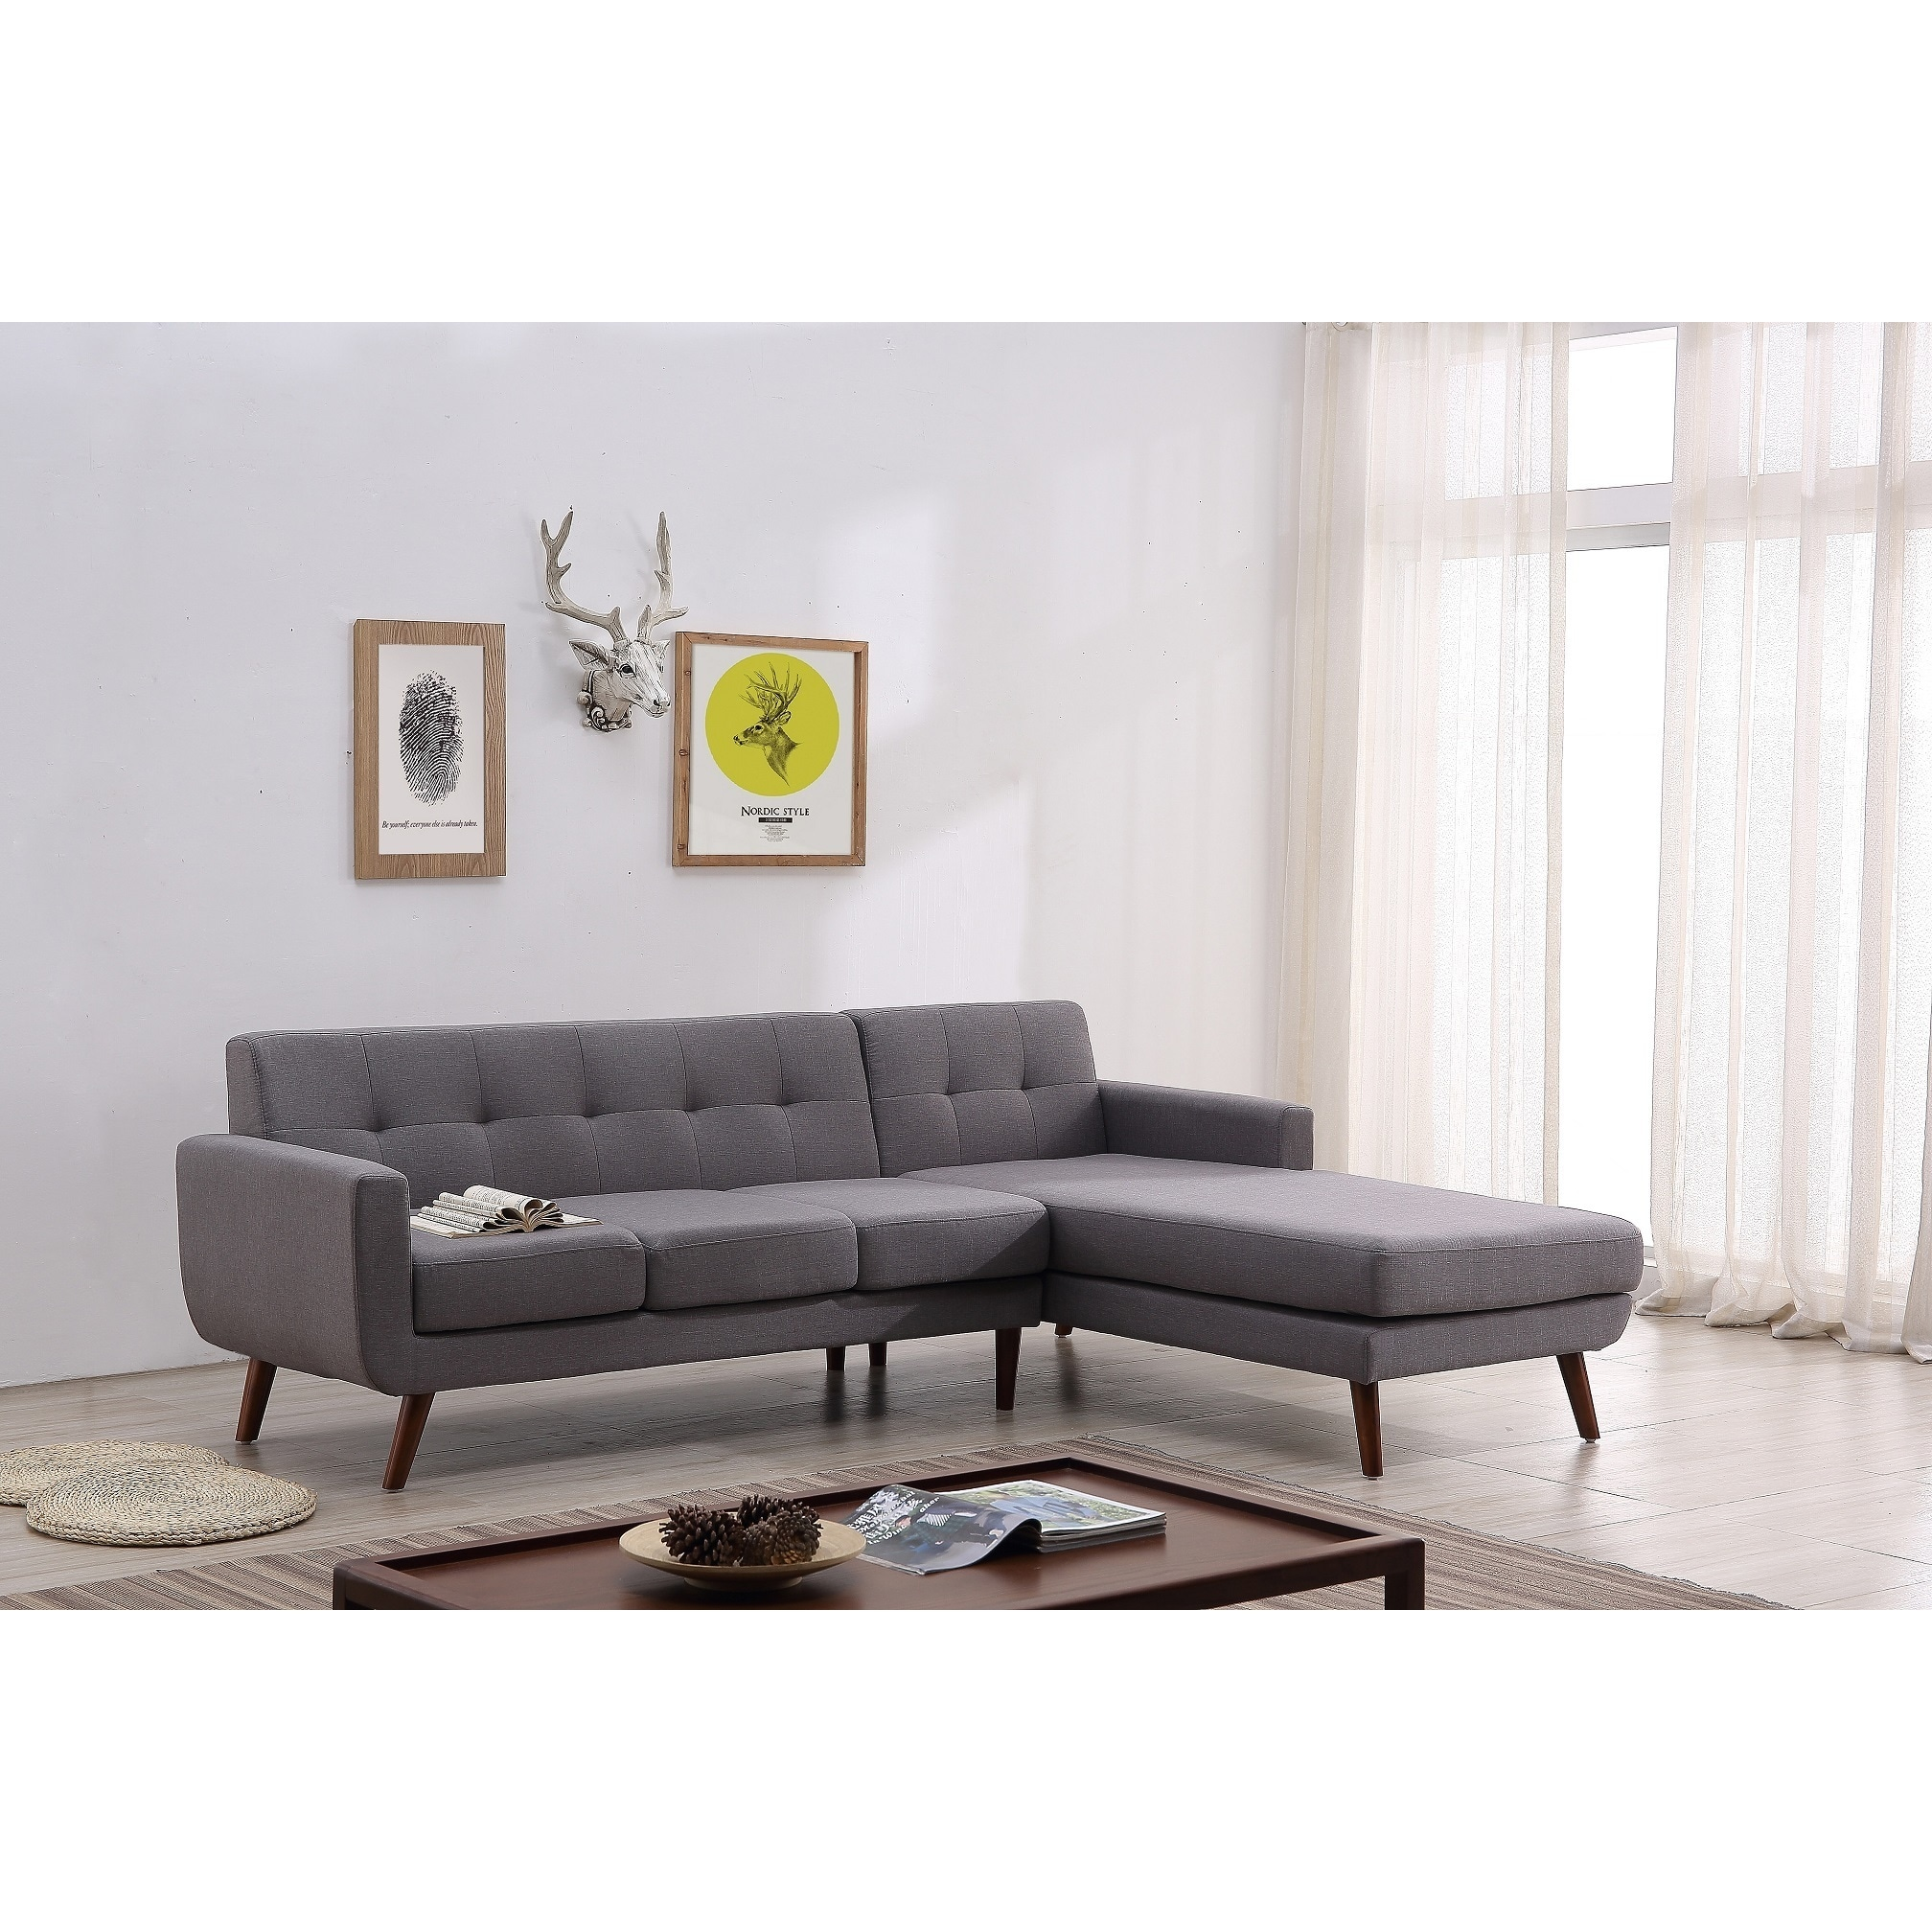 tufted linen sectional sofa how to fix arm on shop mid century right facing fabric upholstered free shipping orders over 45 overstock com 16764421